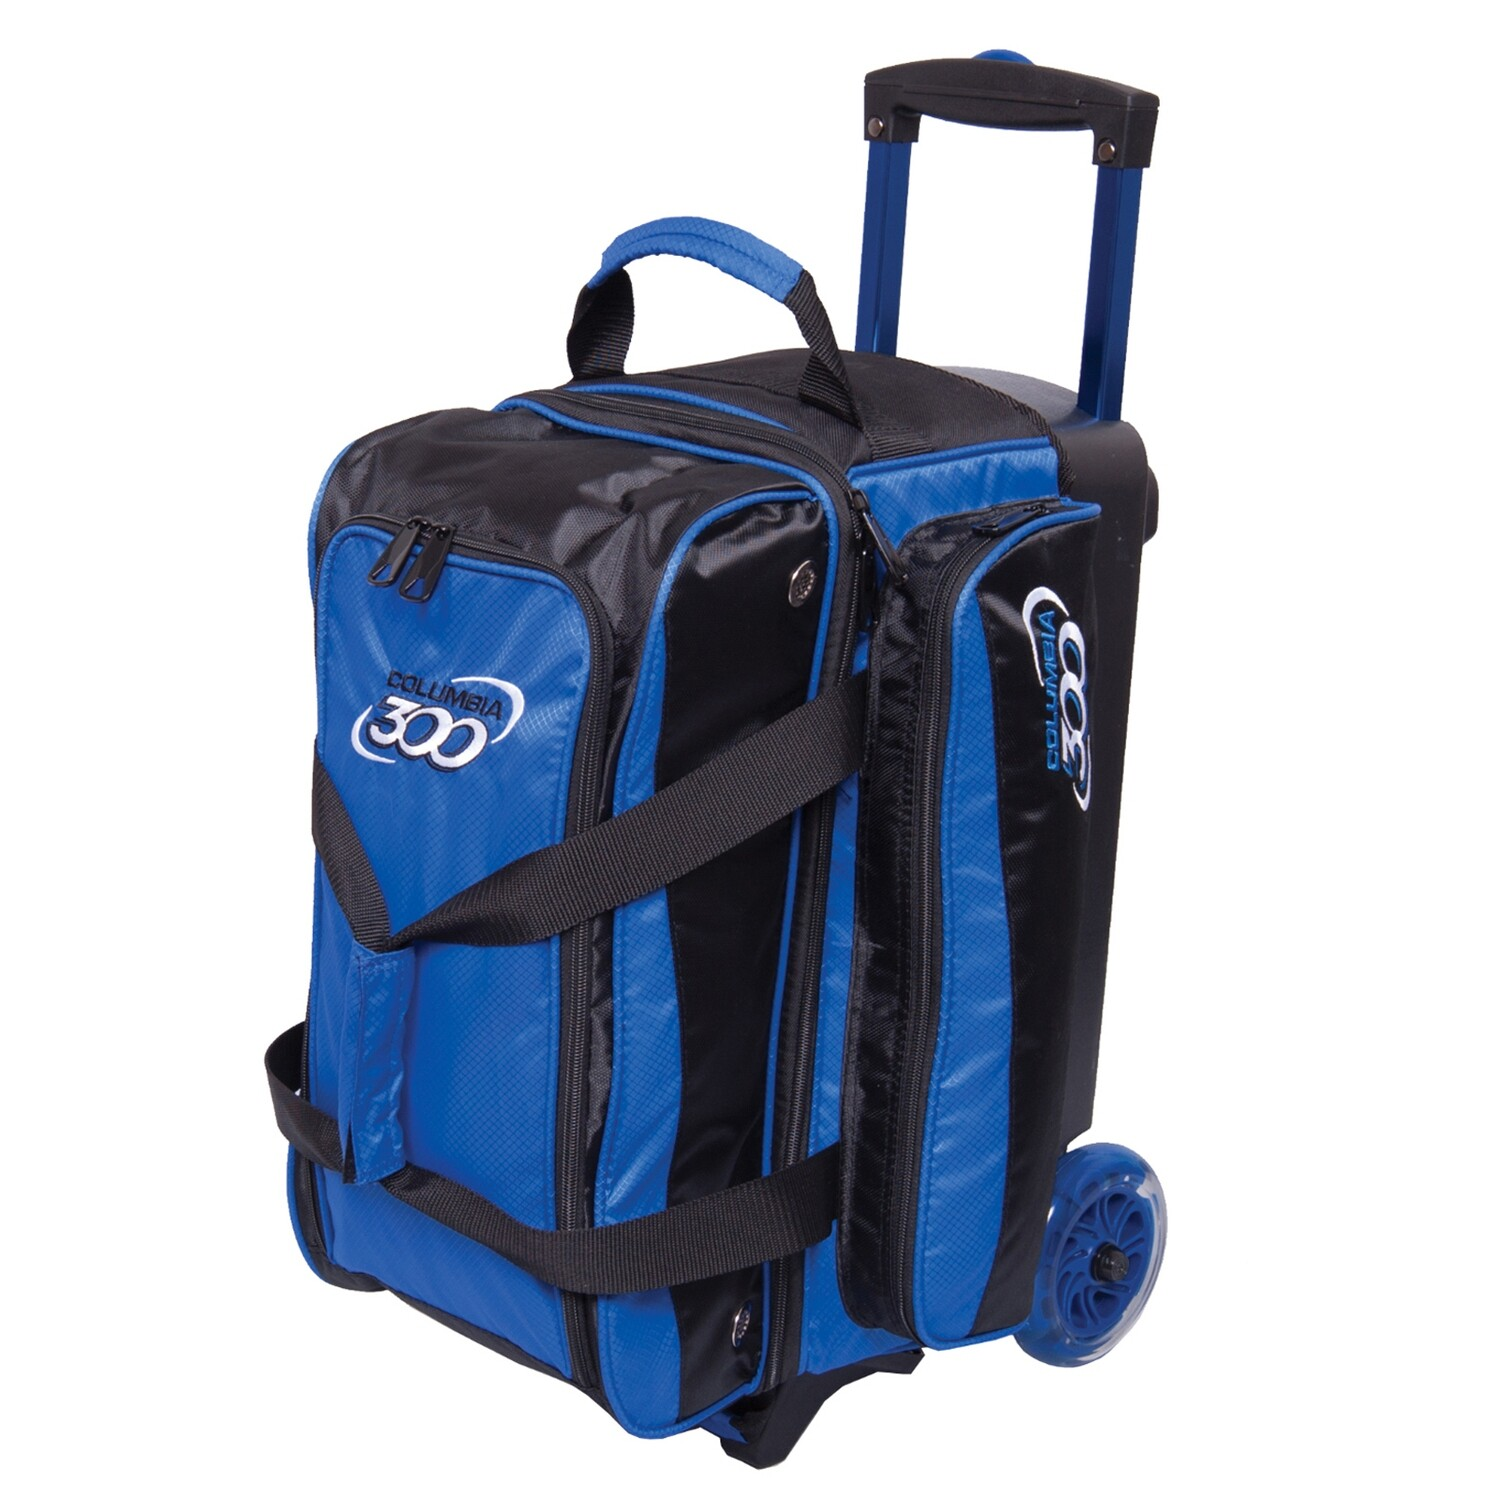 Columbia Icon Black/Blue 2 Ball Roller Bowling Bag